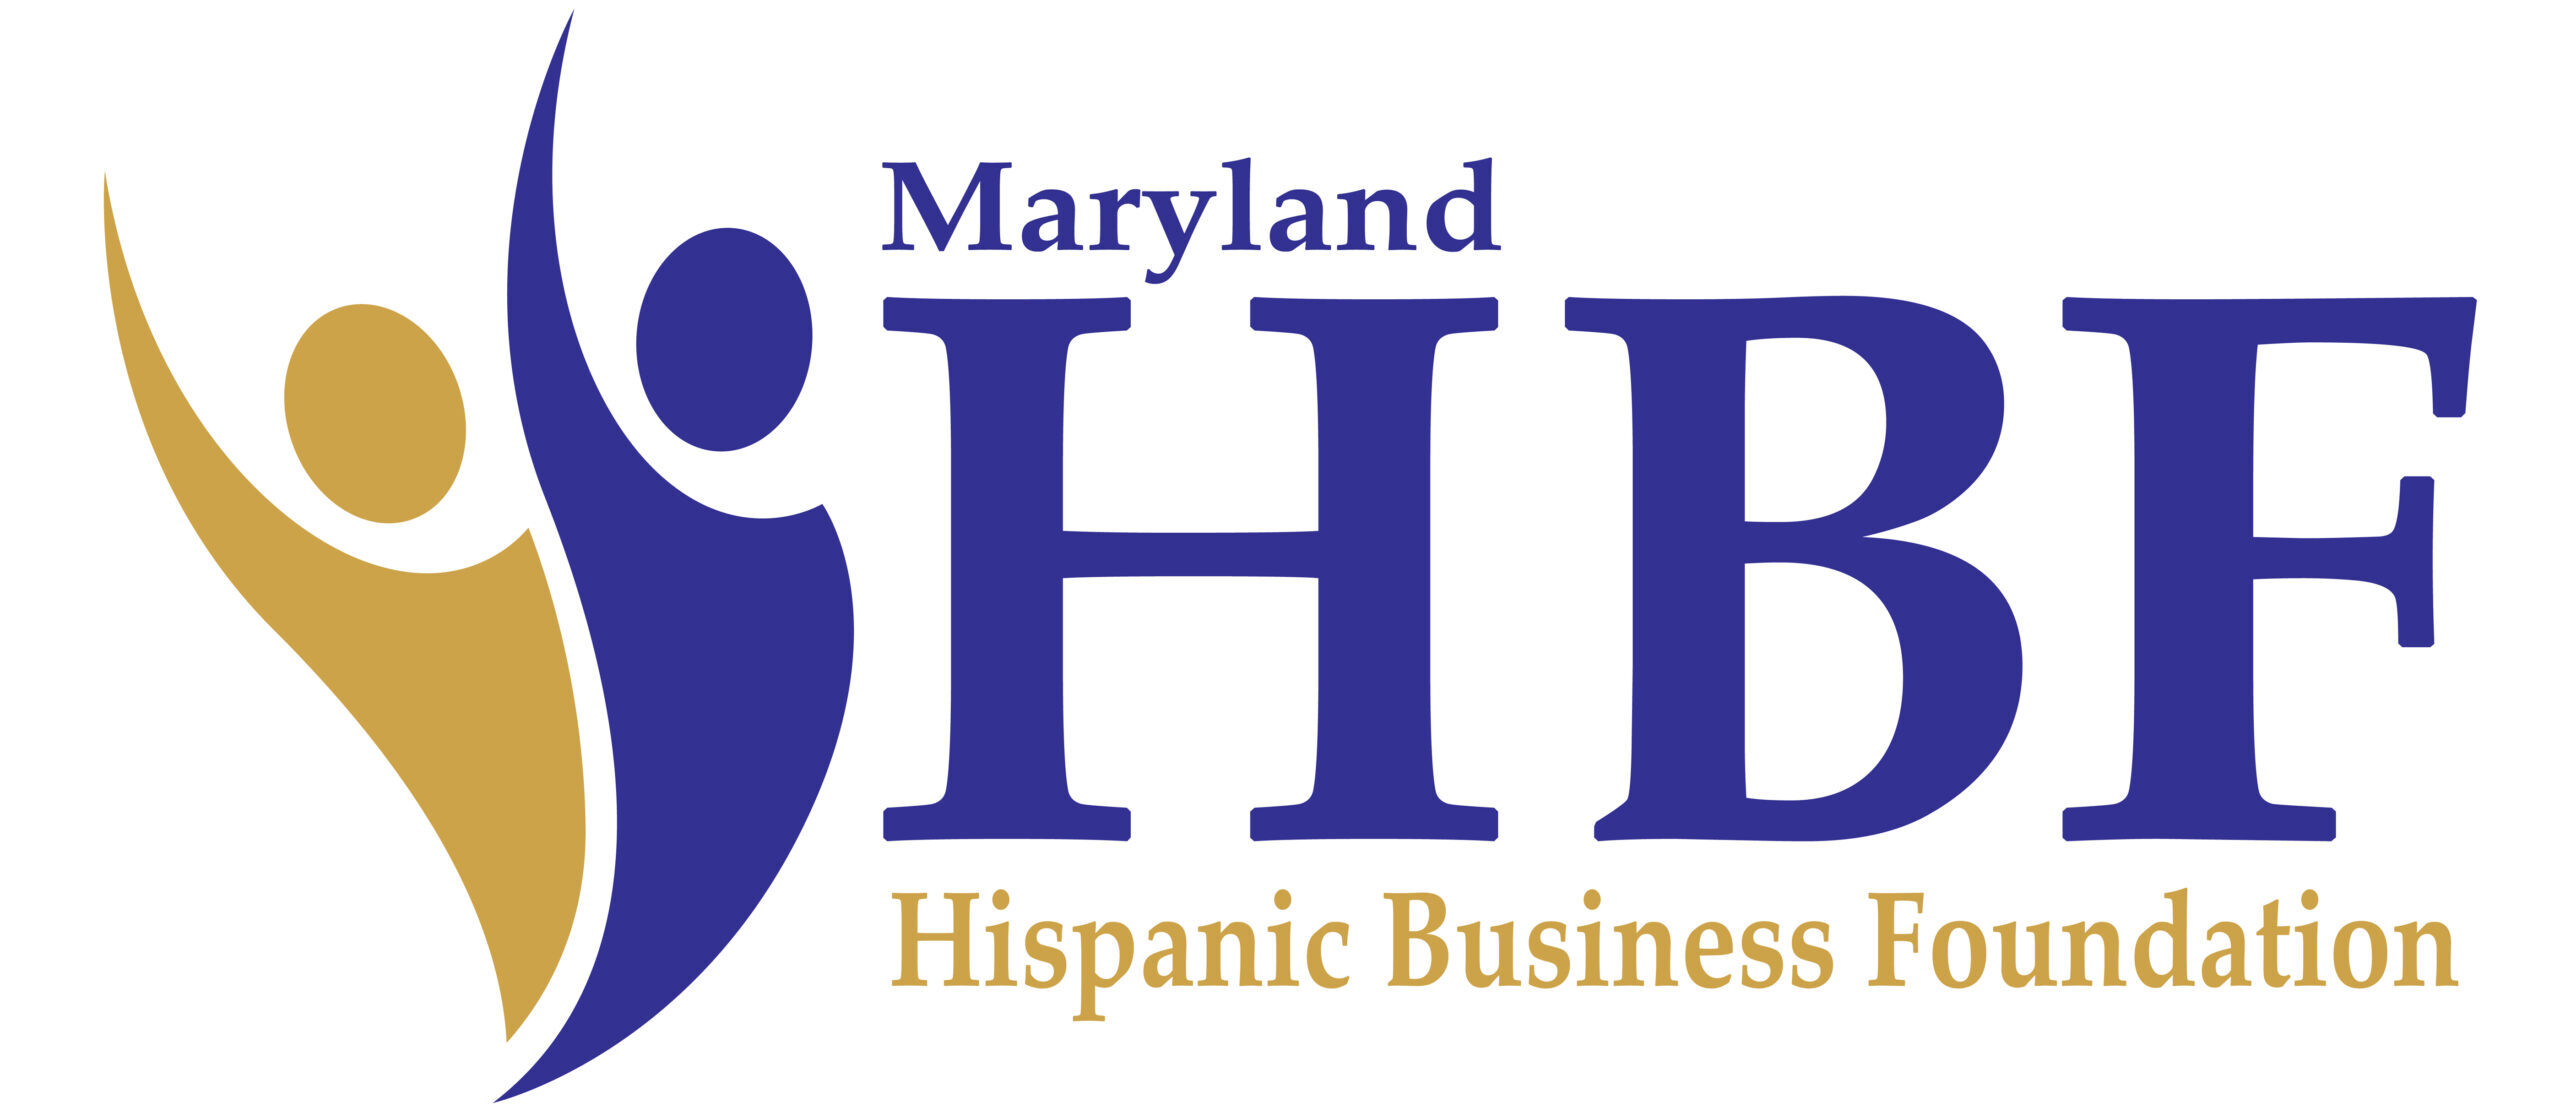 Hispanic Business Foundation of Maryland